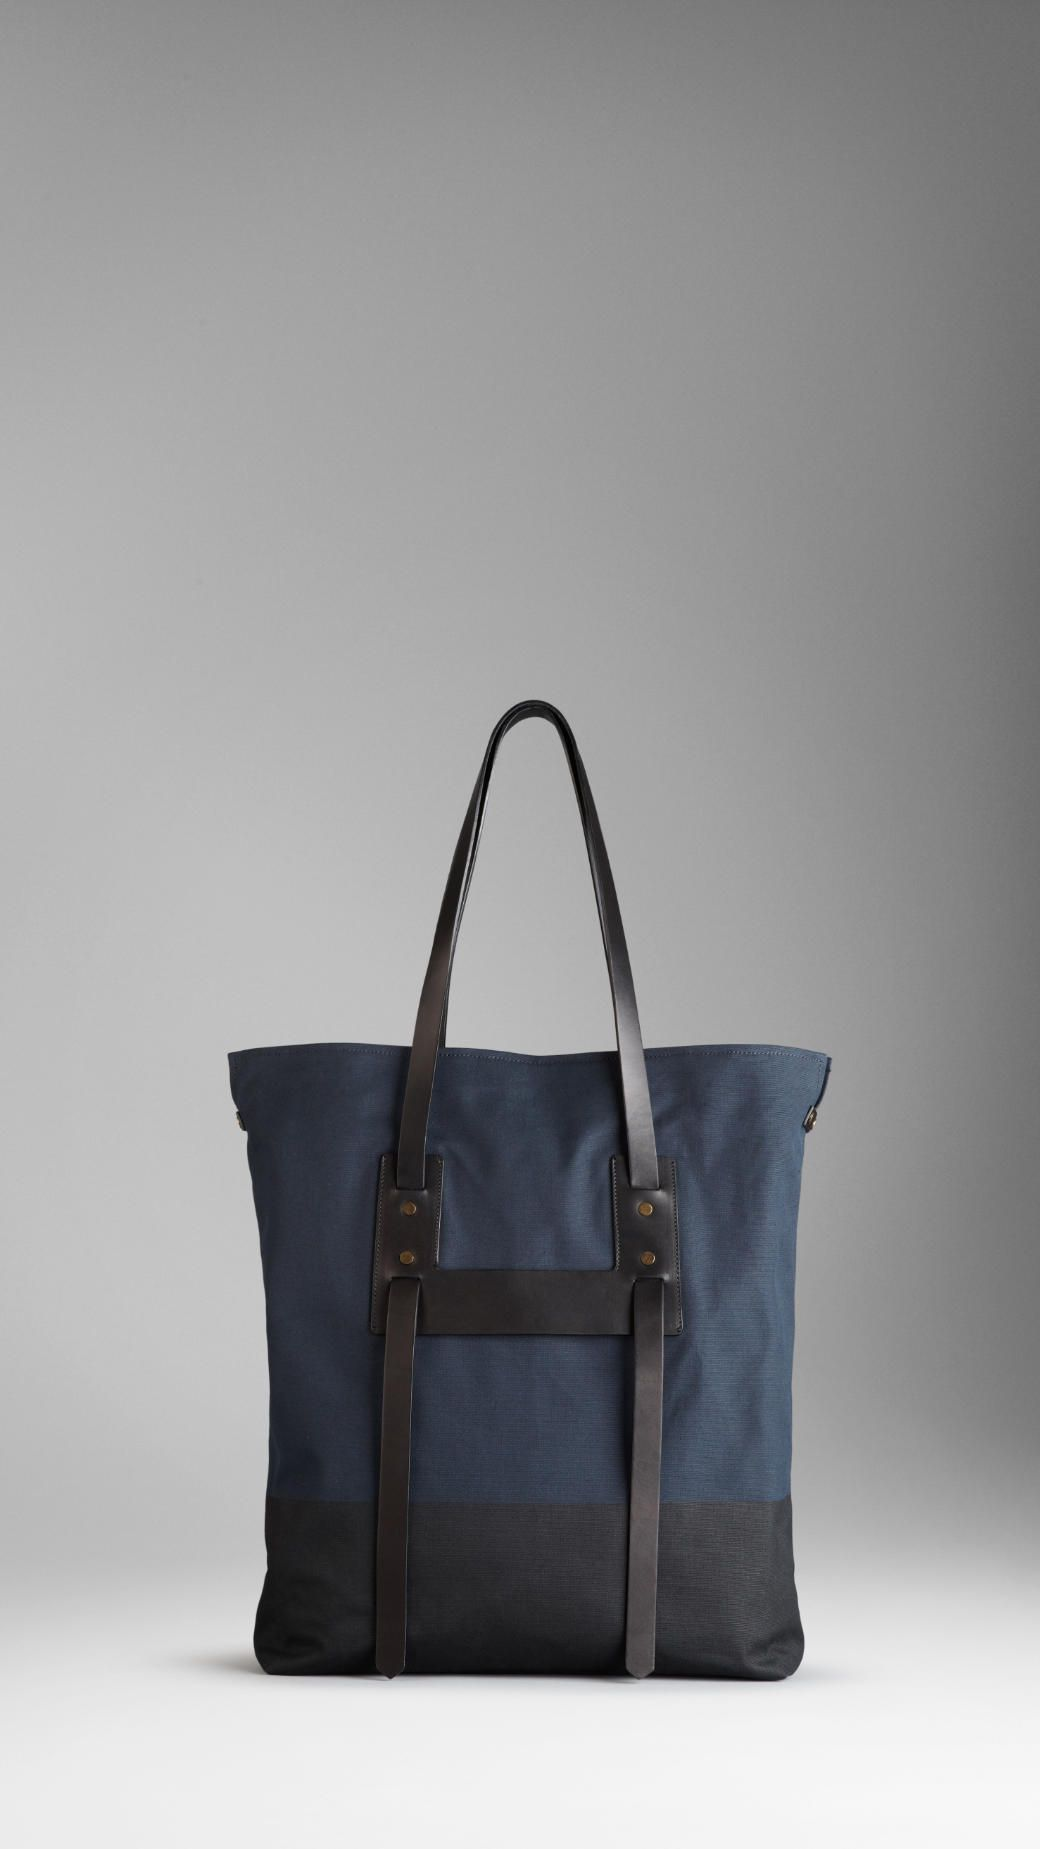 Burberry mens canvas tote bag 2